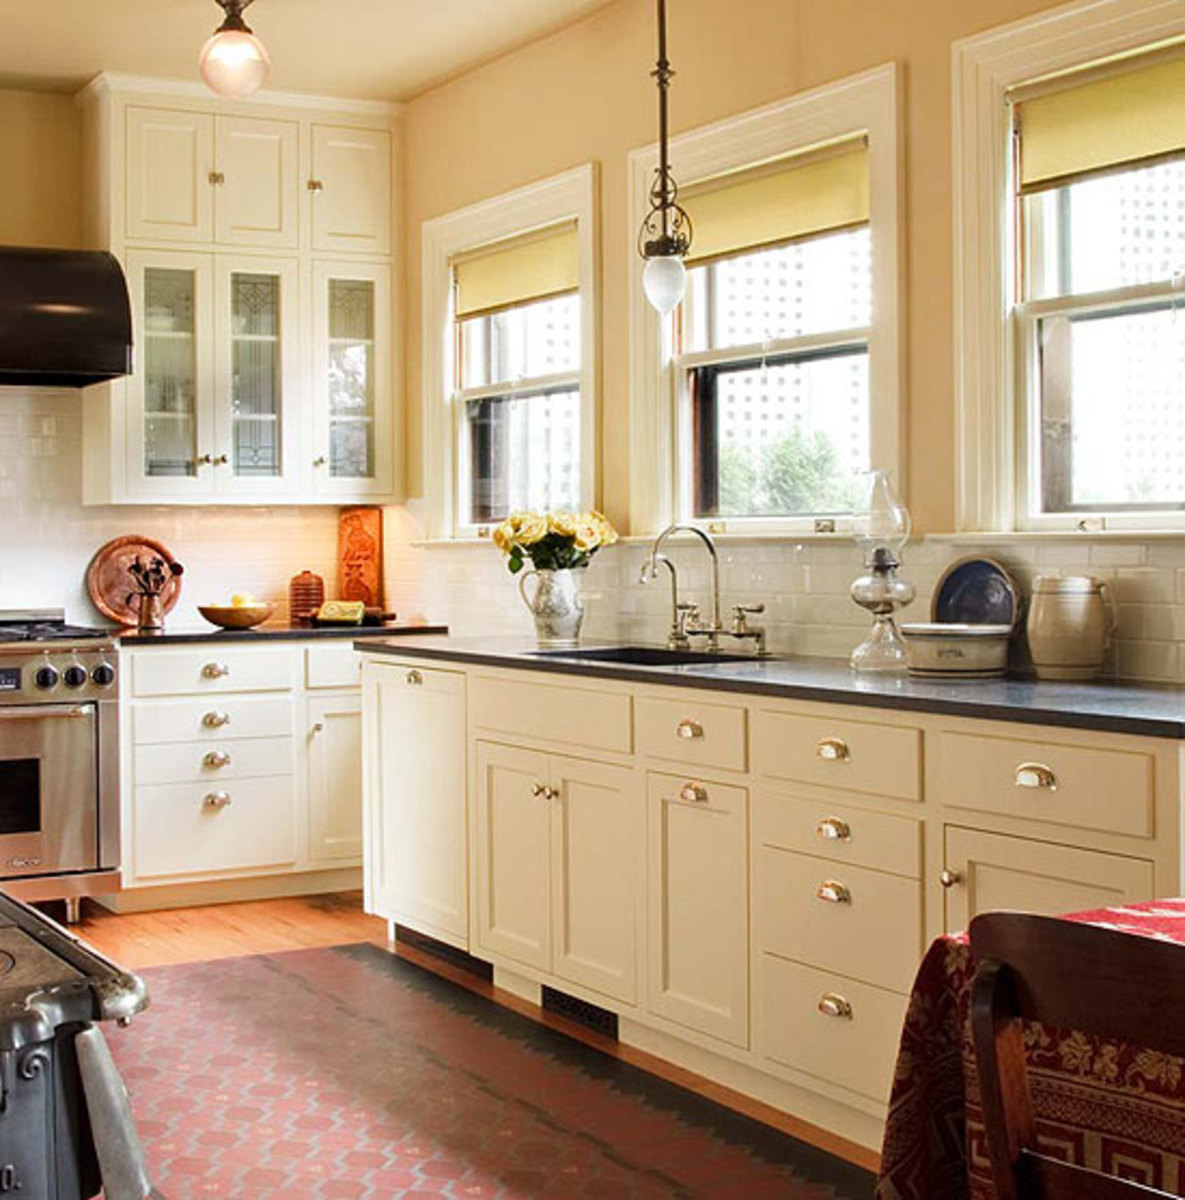 White Kitchen Cabinets And Countertops: Kitchen Sinks & Countertops: Go Trendy Or Timeless?